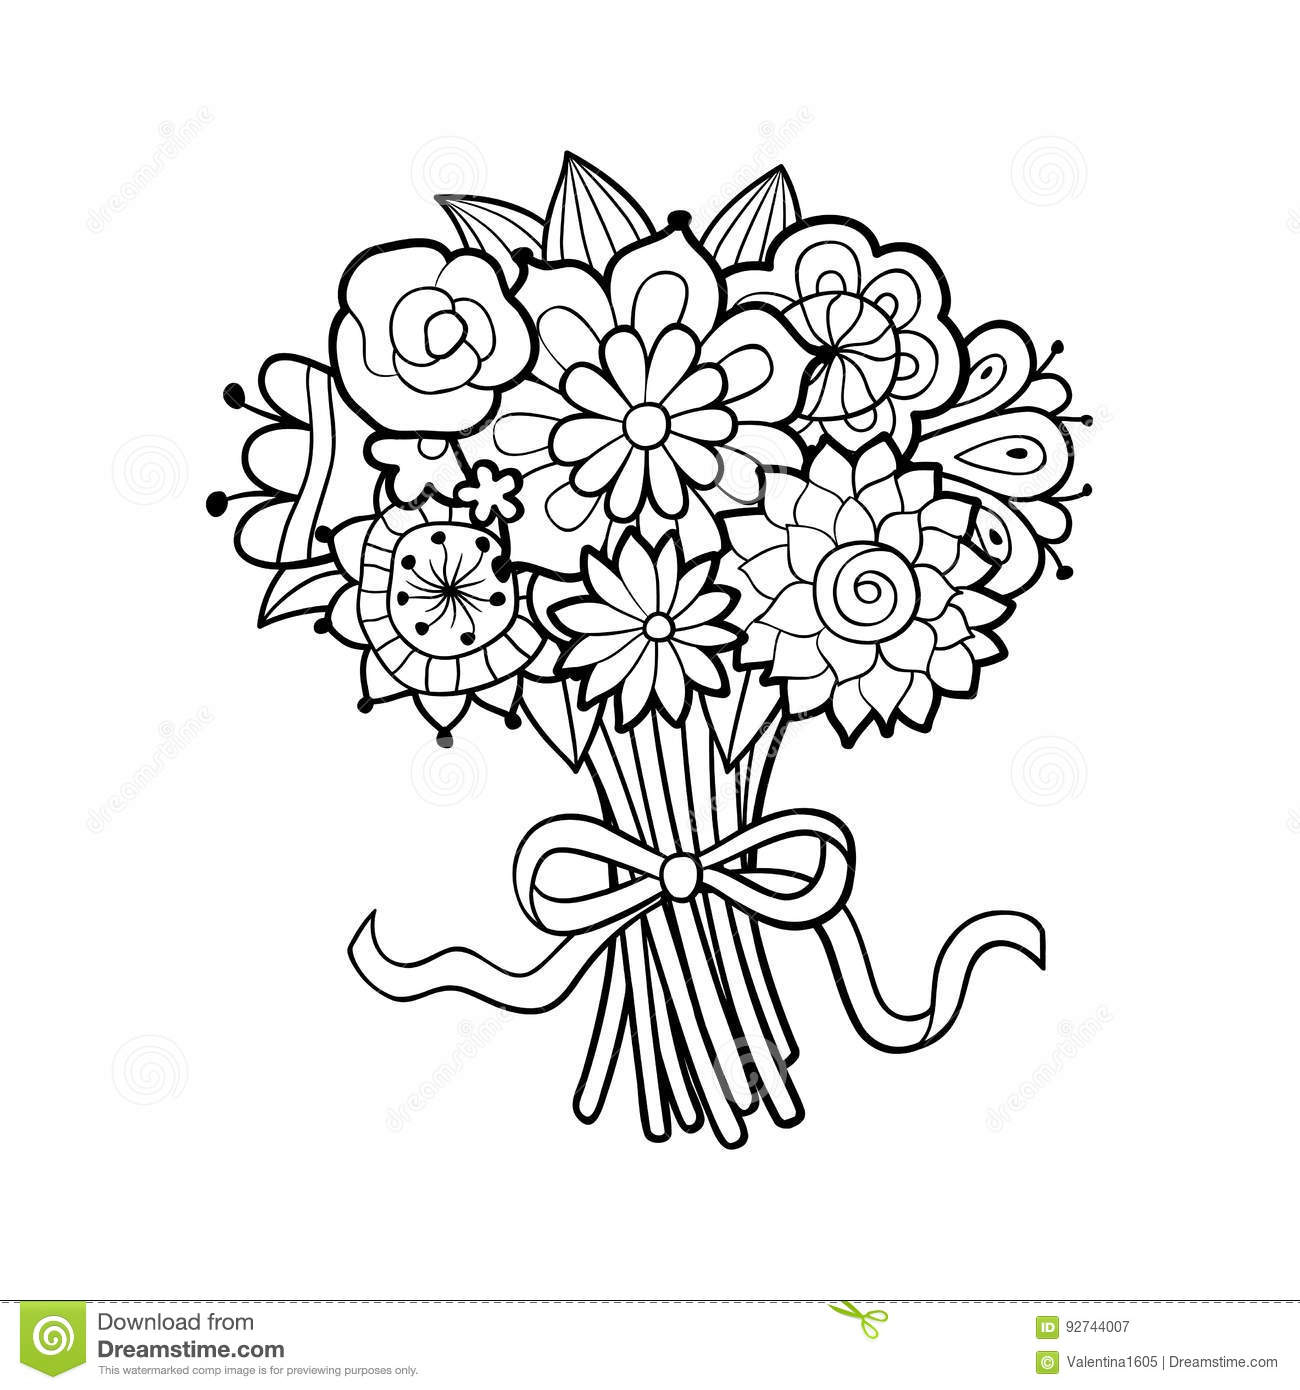 Flower Bouquet Stock Vector Illustration Of Blossom 92744007